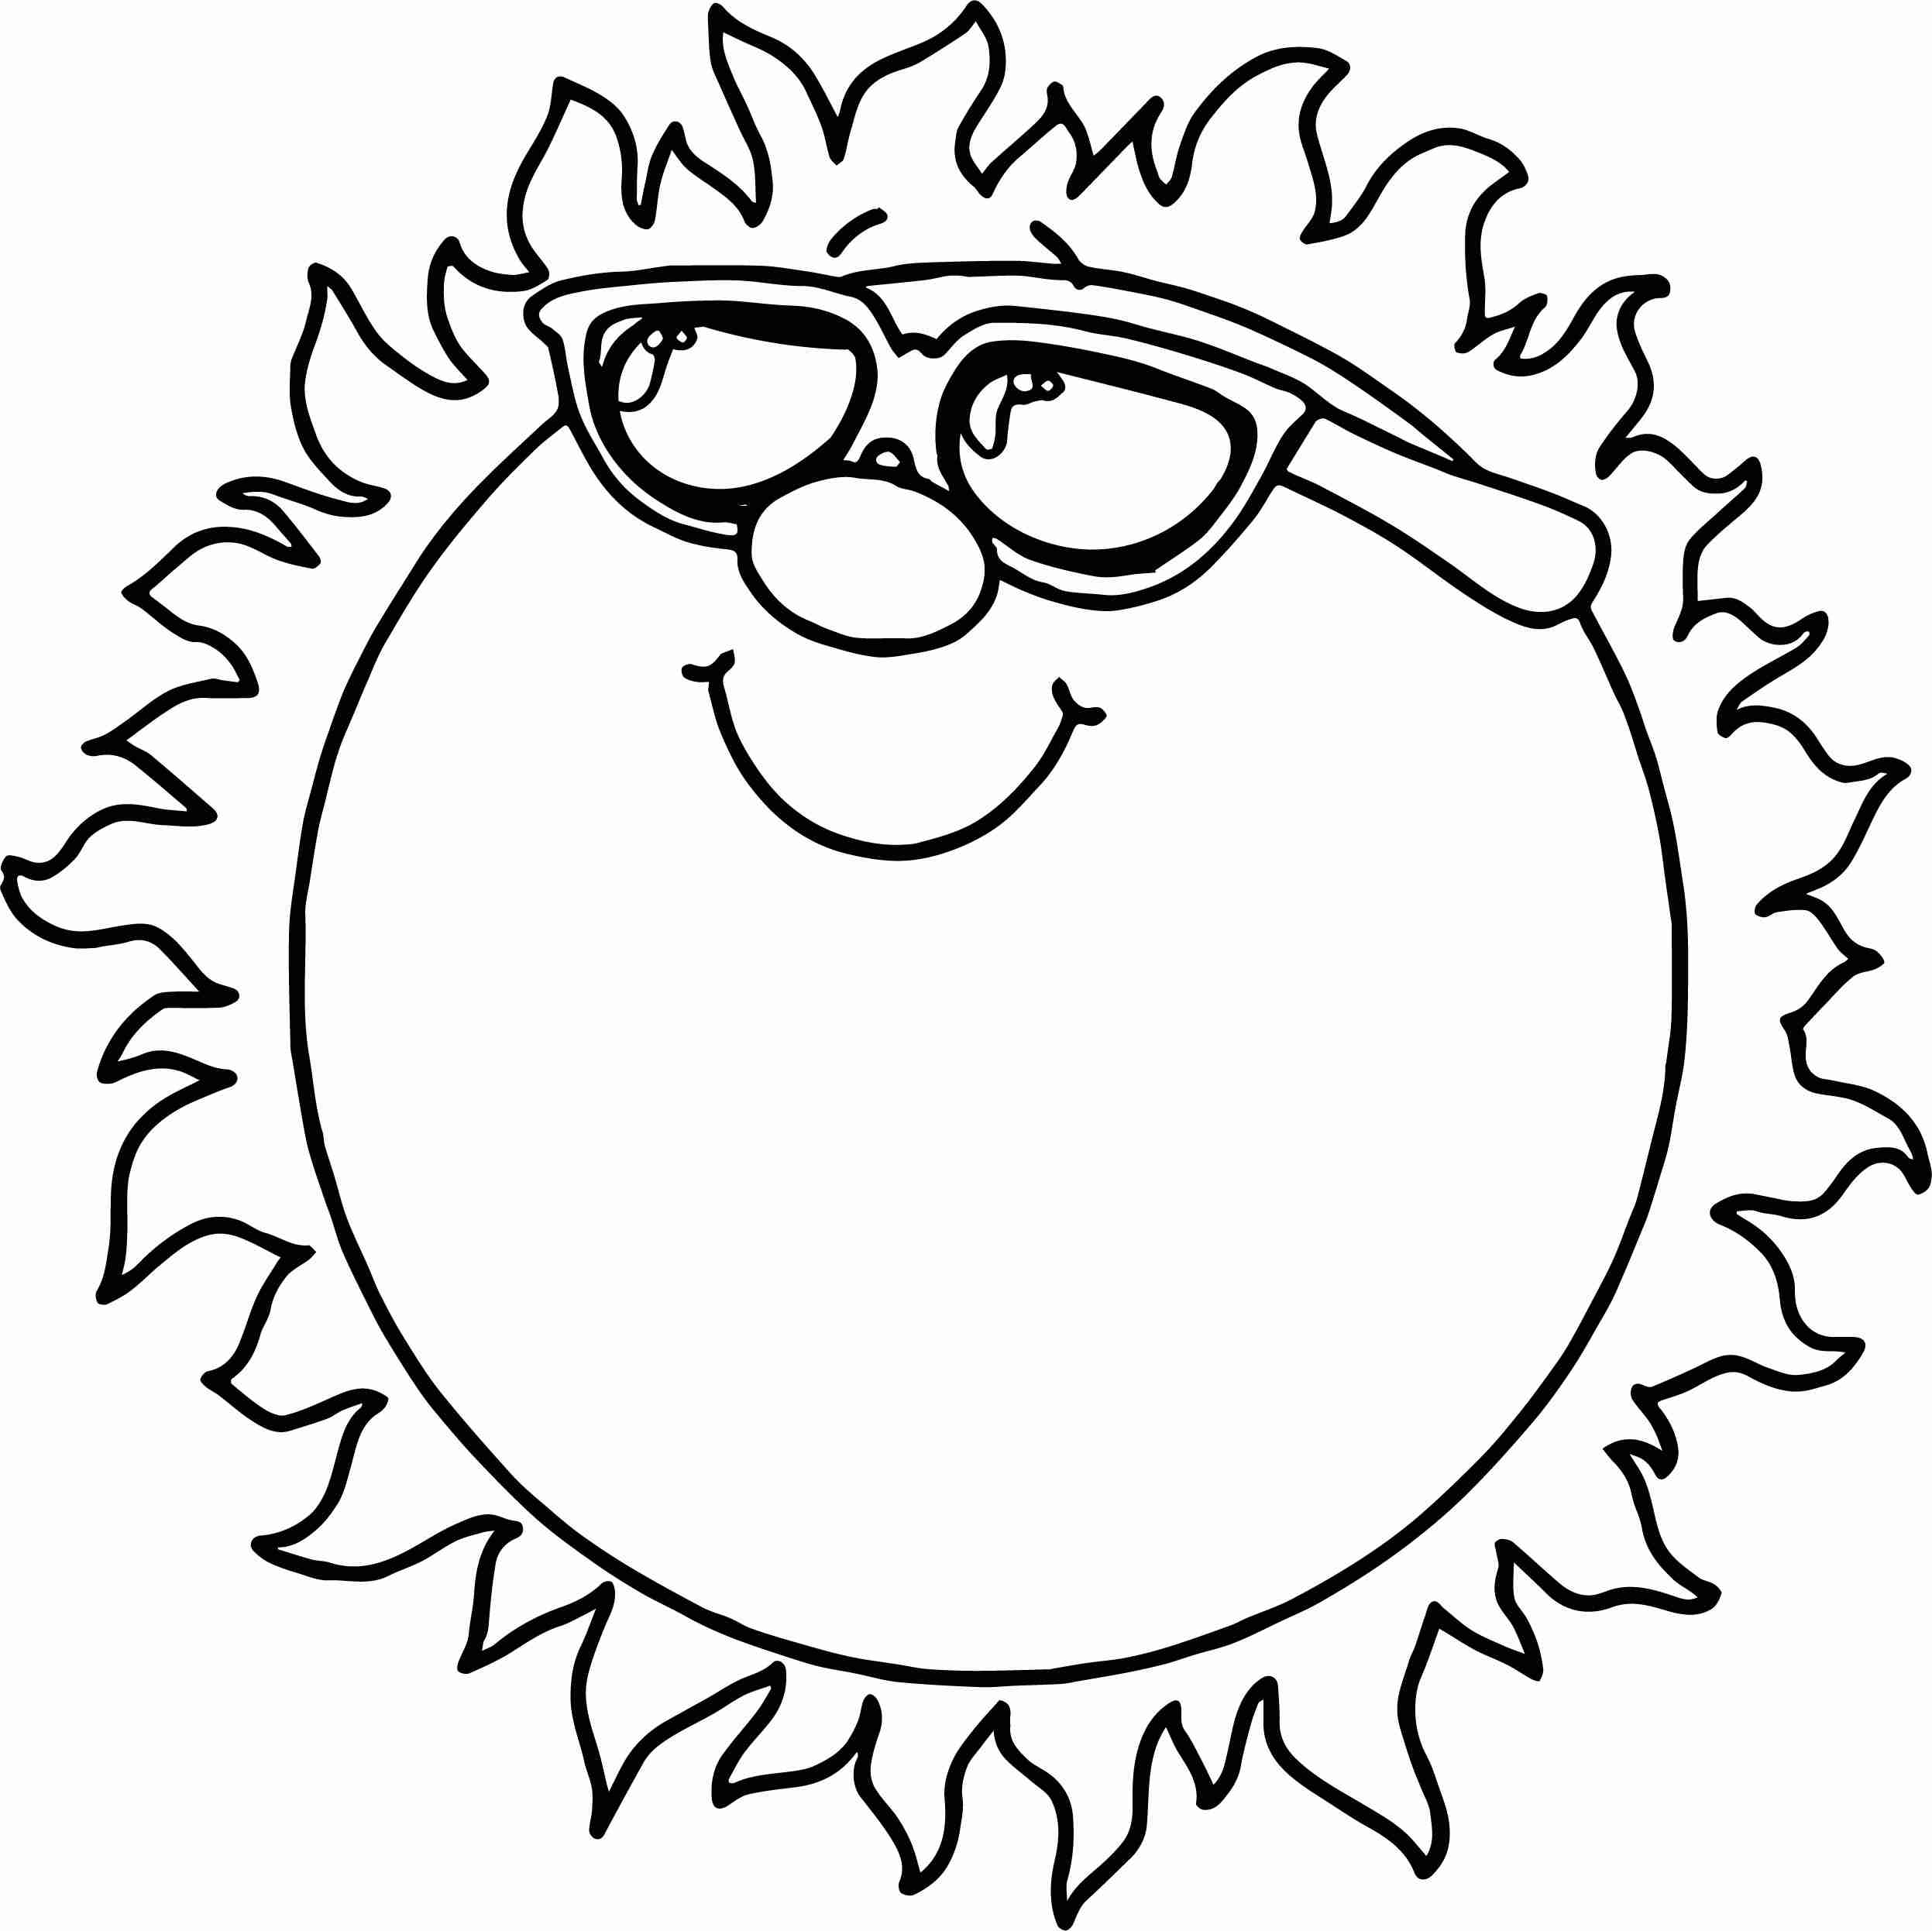 sun with sunglasses coloring page suns coloring pages coloringcrewcom coloring with page sunglasses sun